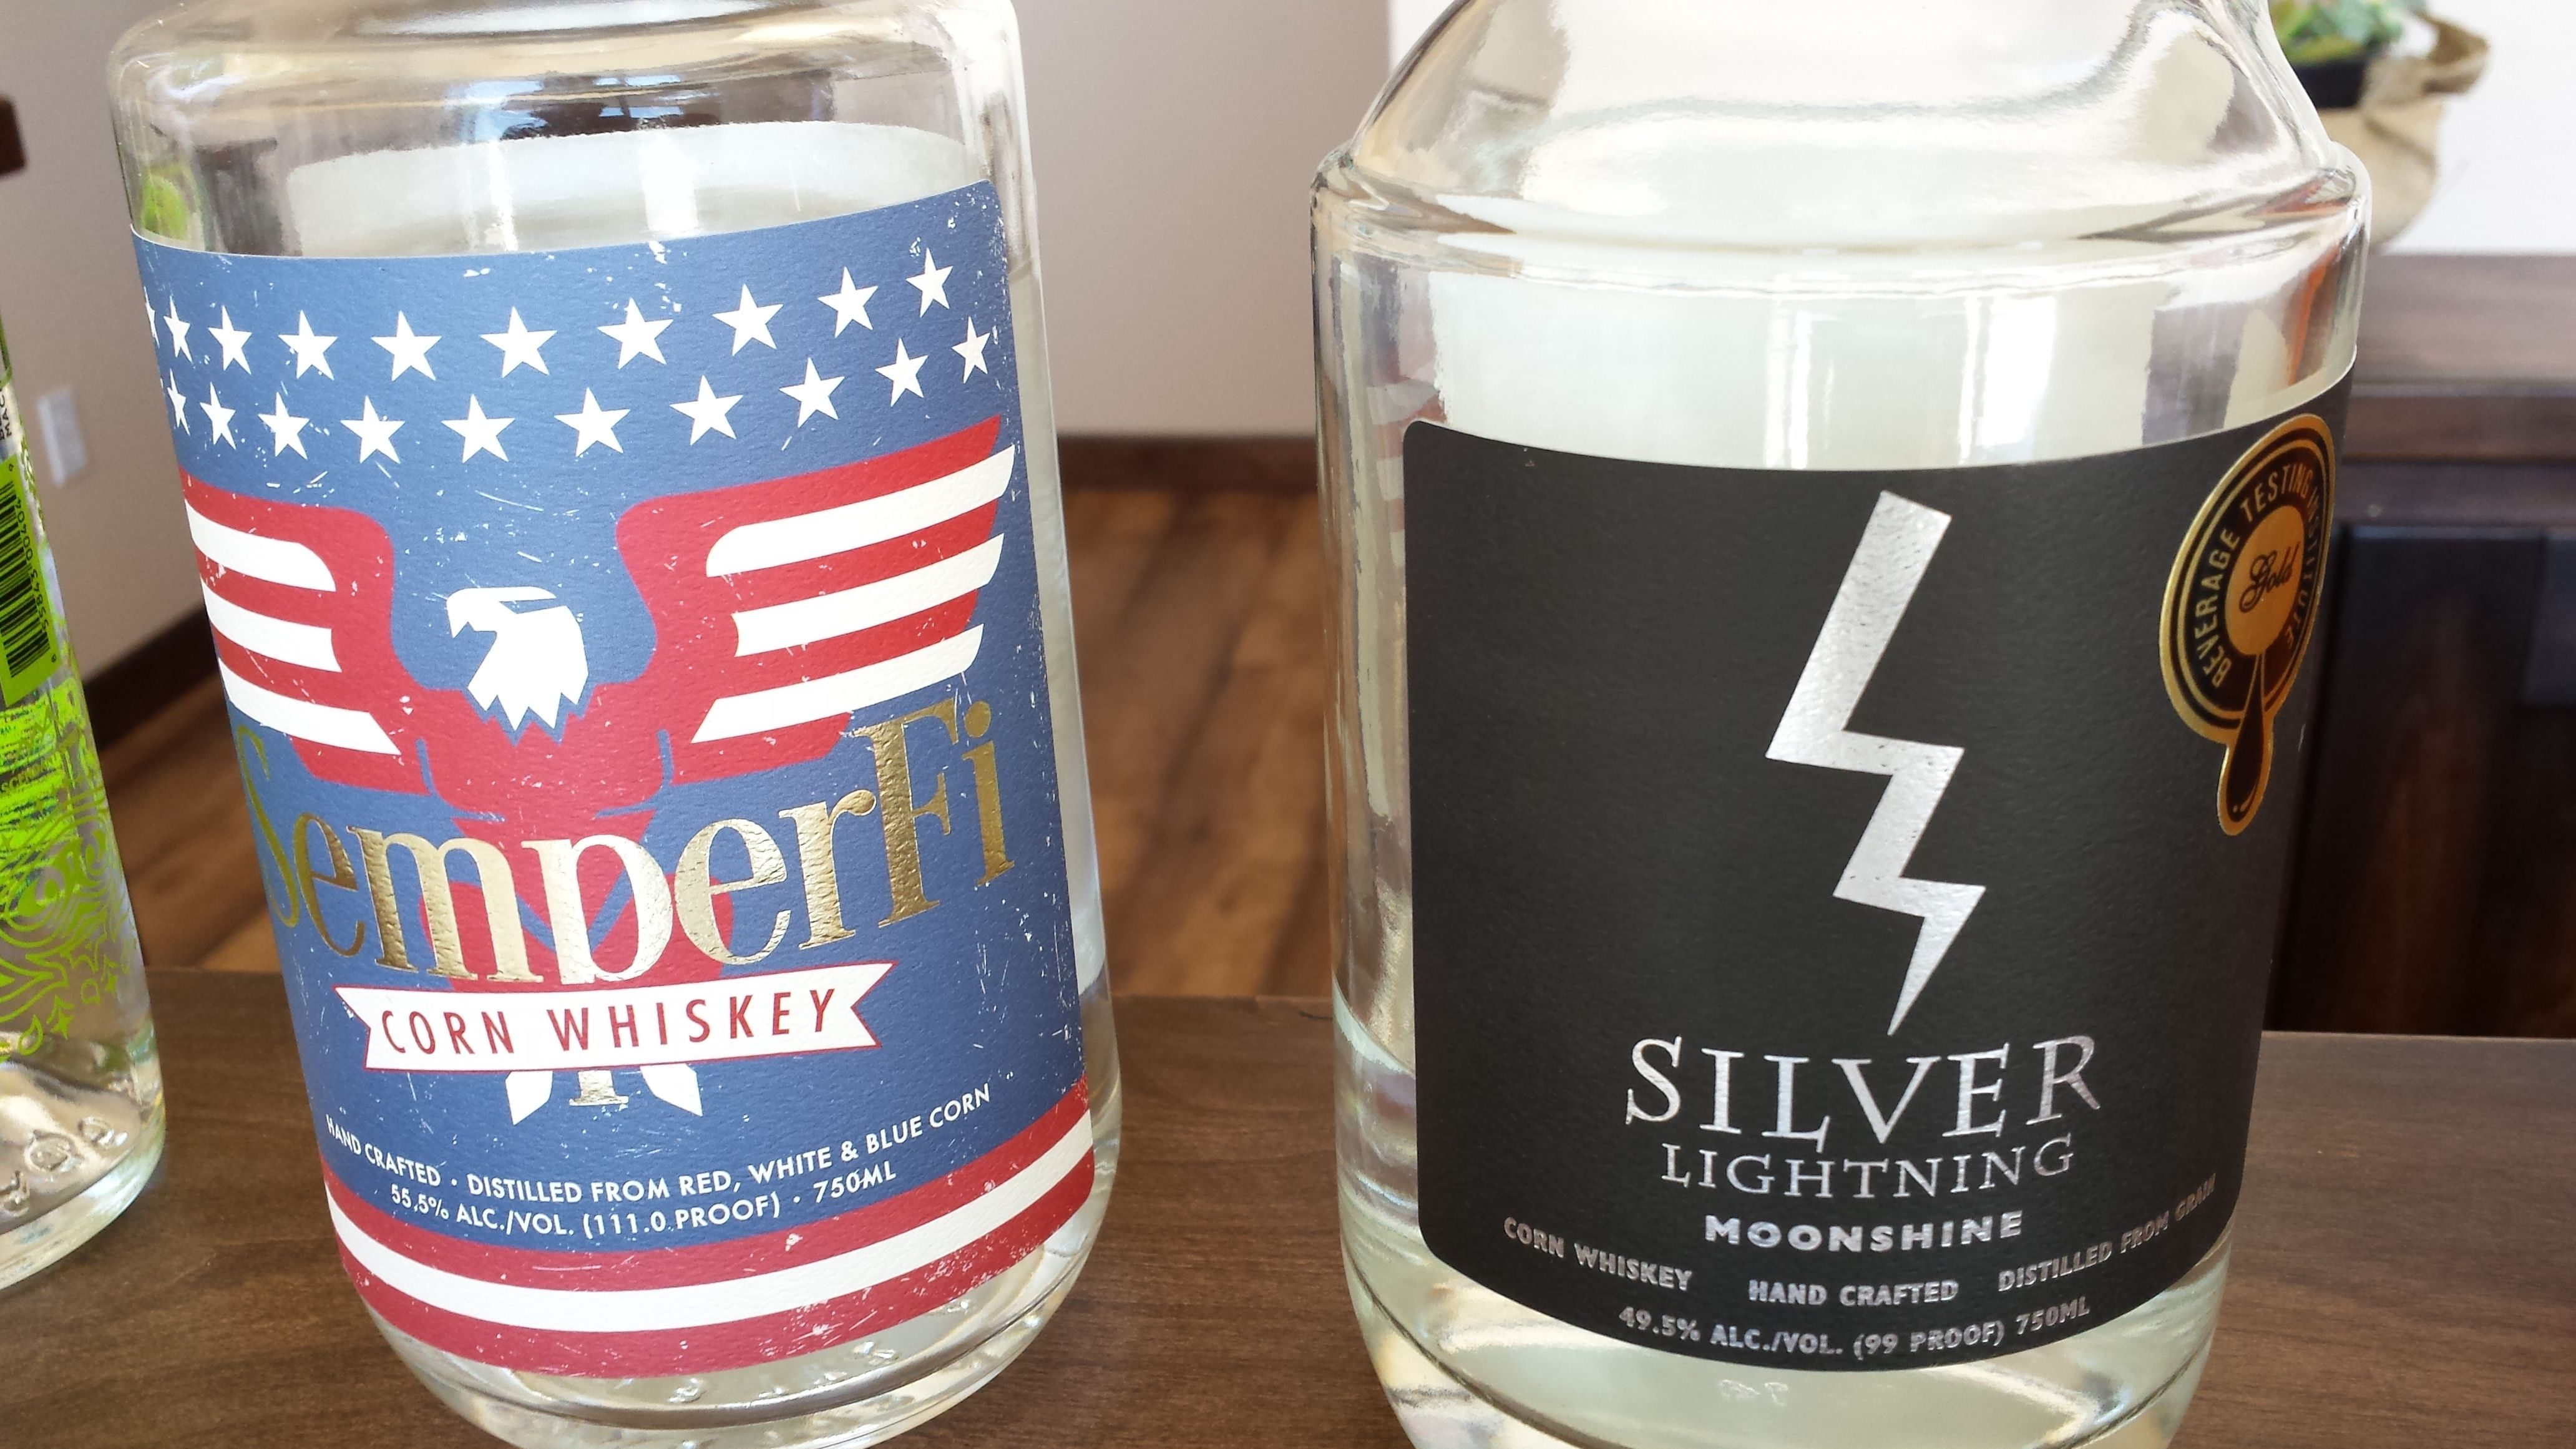 Ascendant Spirits Semper Fi and Silver Lightning Moonshine